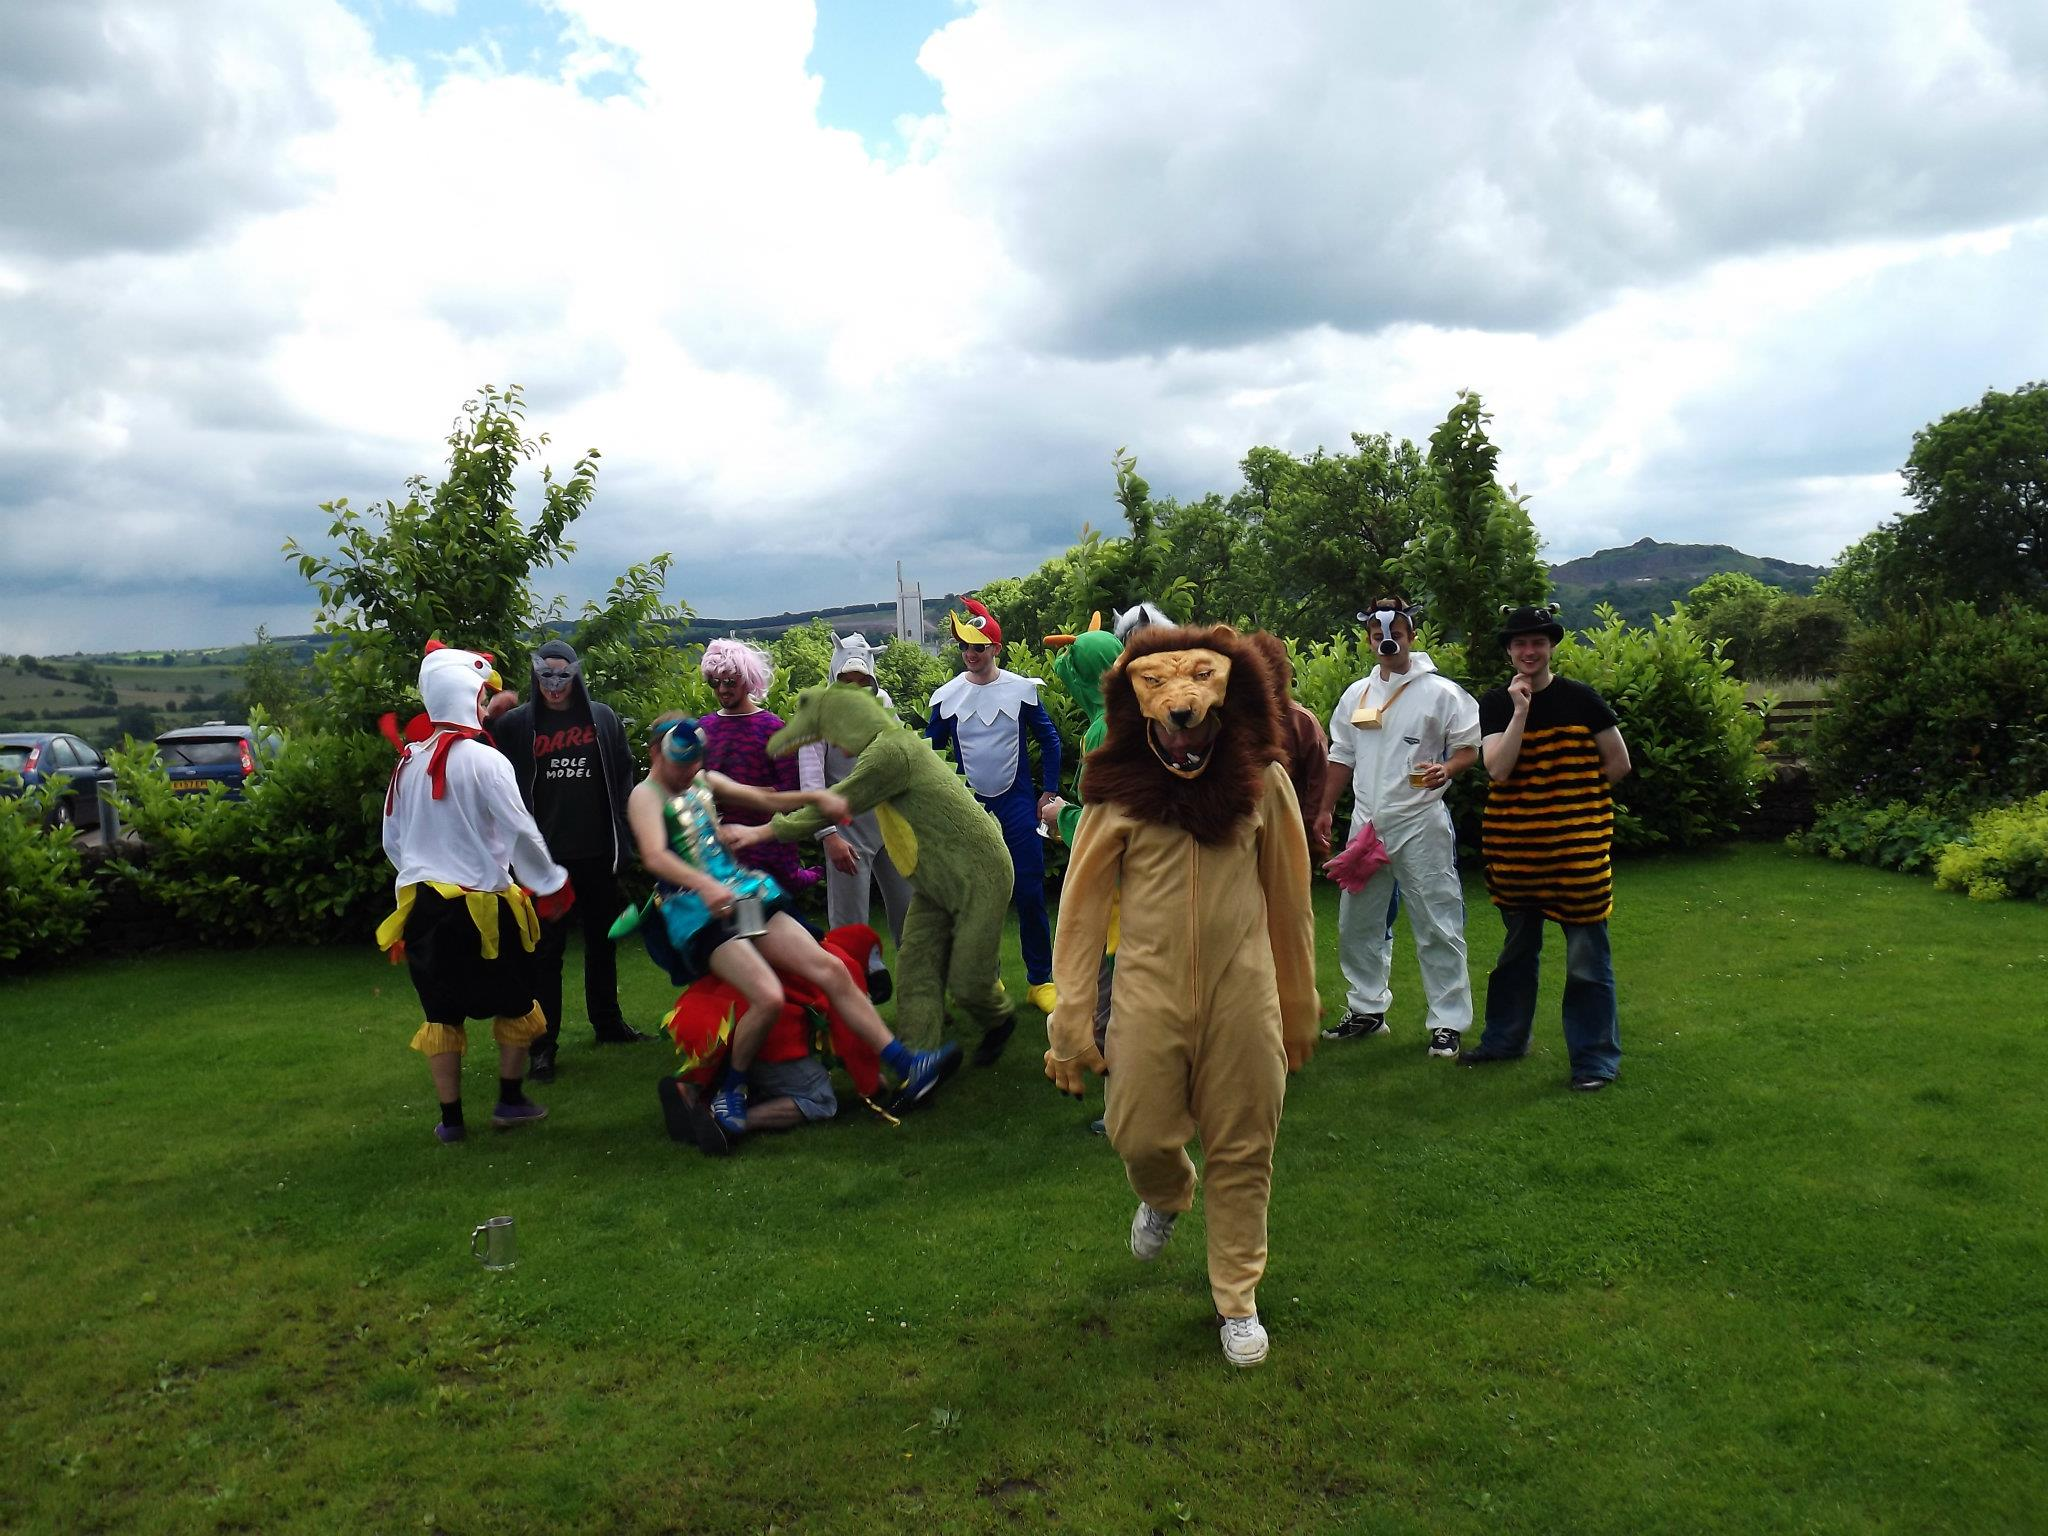 Science, podcasts &learning new things all the time - (I'm the dude in the lion outfit…)